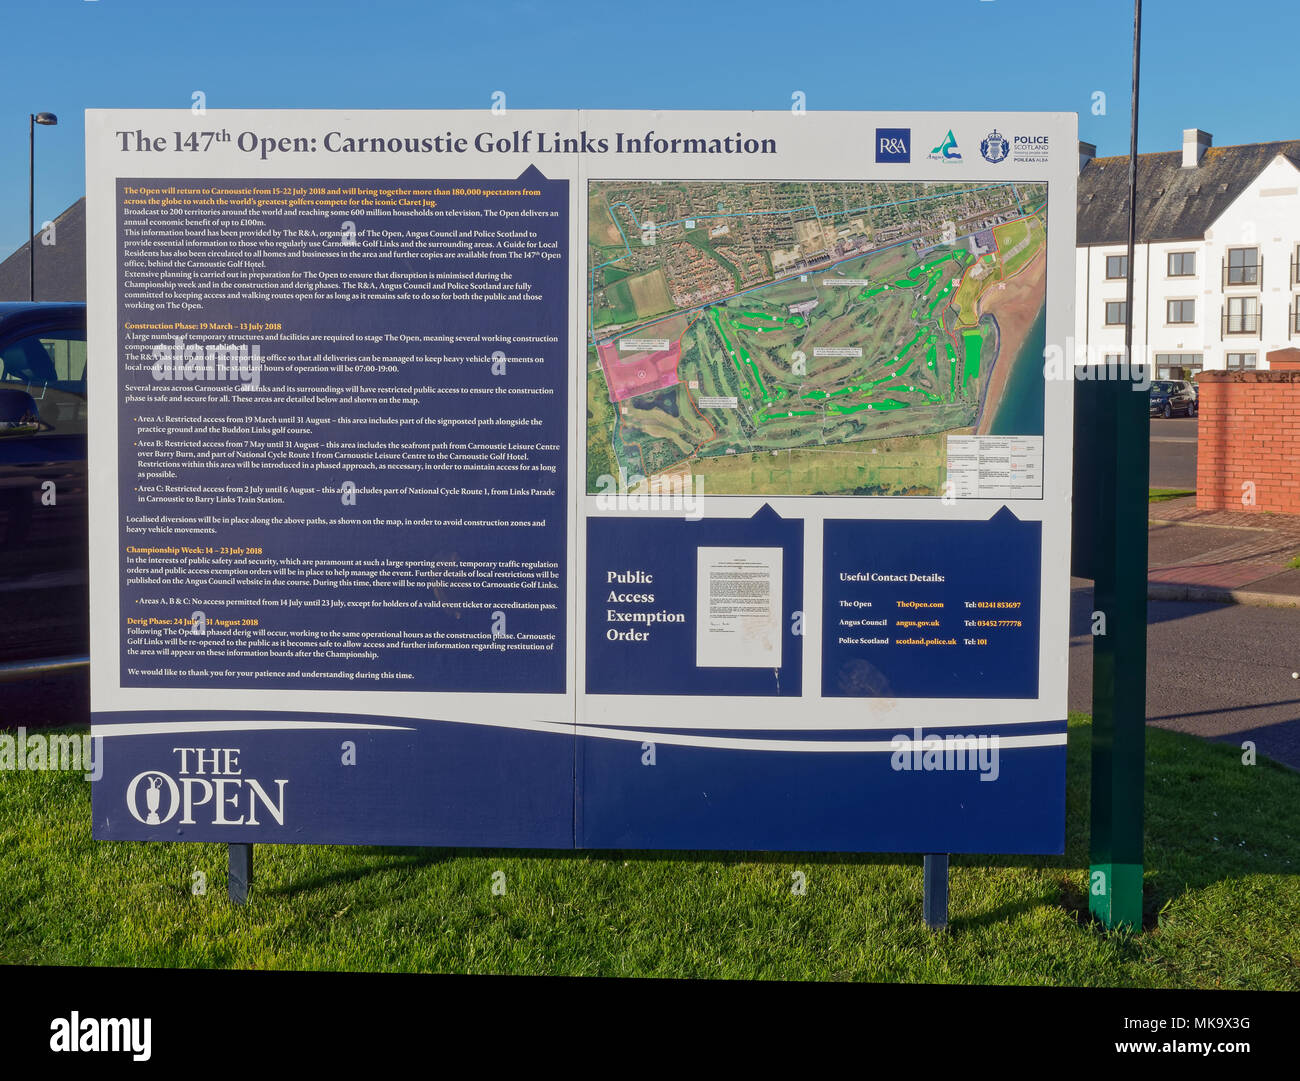 An Information Sign for the Open Golf Championship being held at Carnoustie Golf Links during July 2018. Carnoustie, Angus, Scotland. - Stock Image